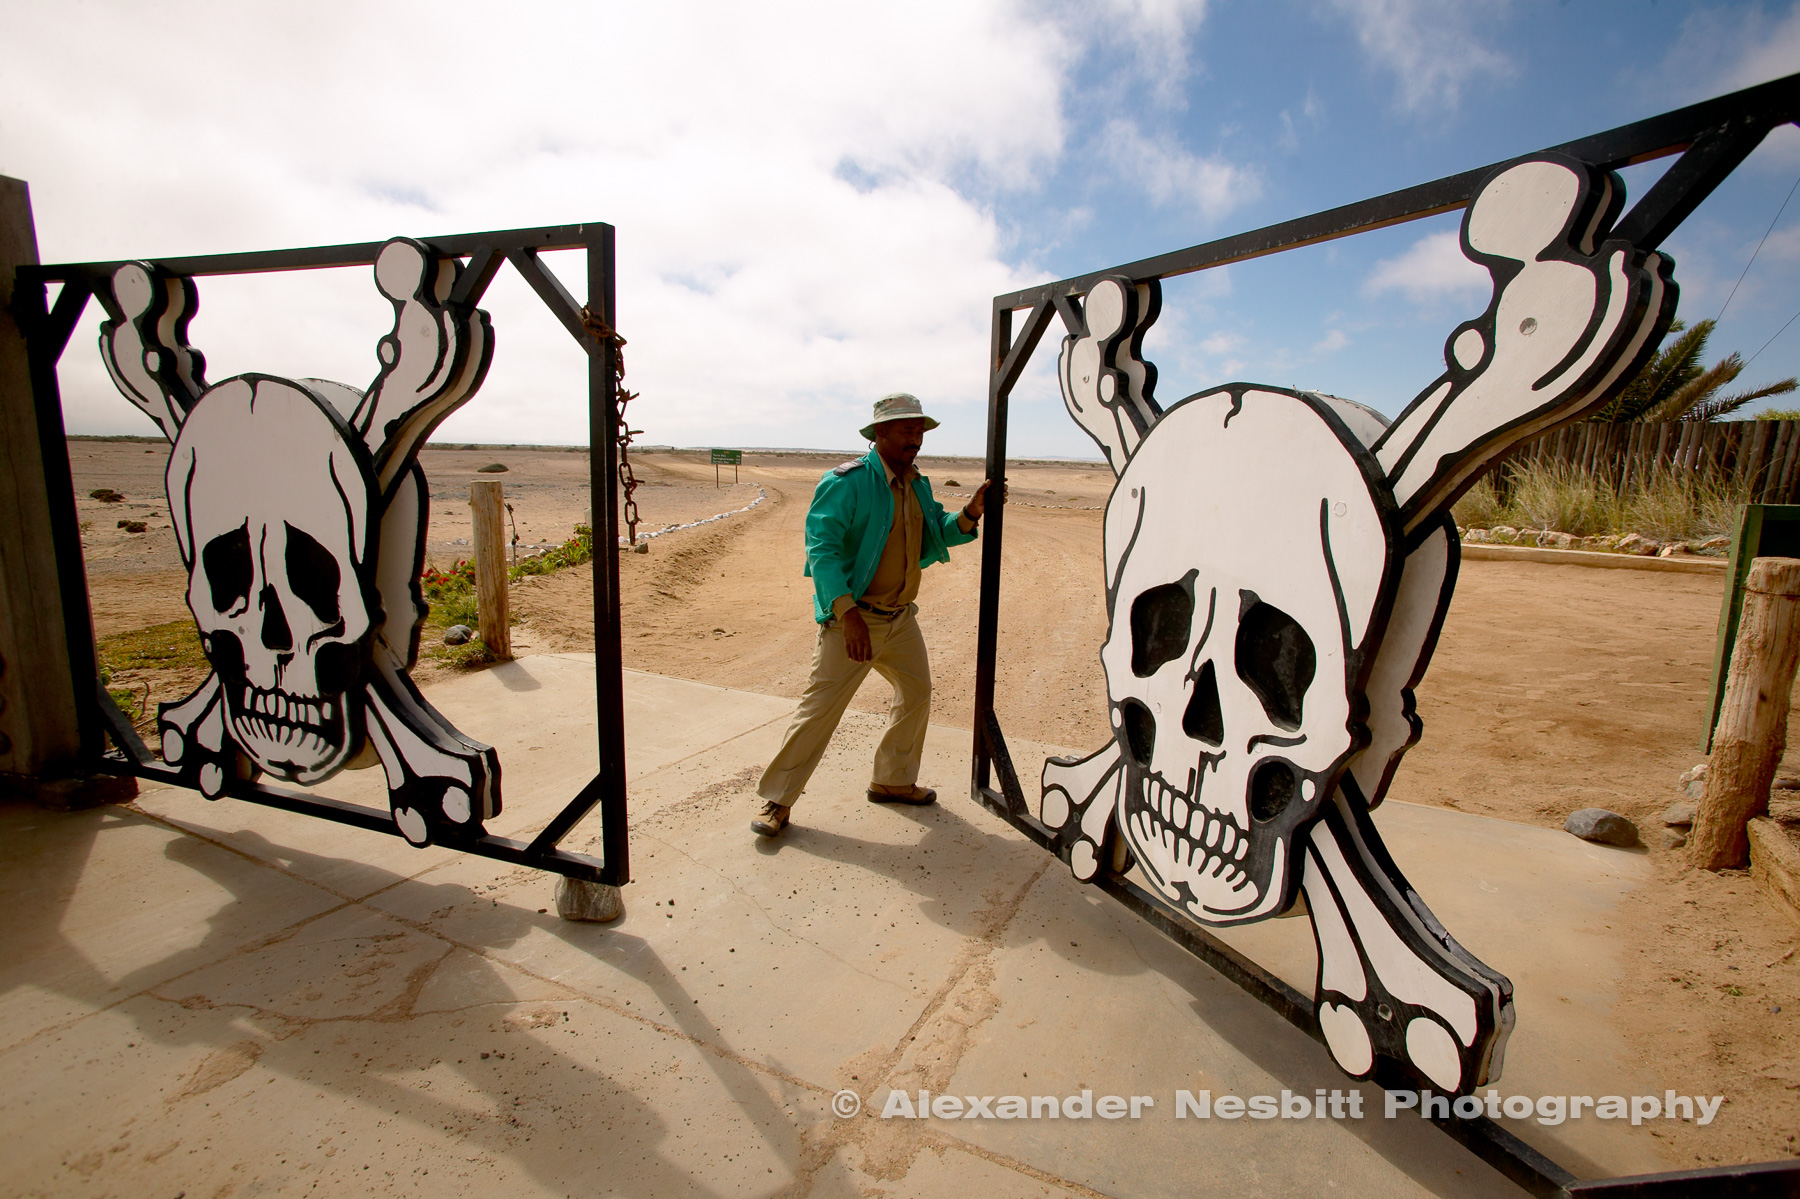 Namibia, 2004 - A giant gate decorated with skulls opens, showing the path to the the famous skelton coast.